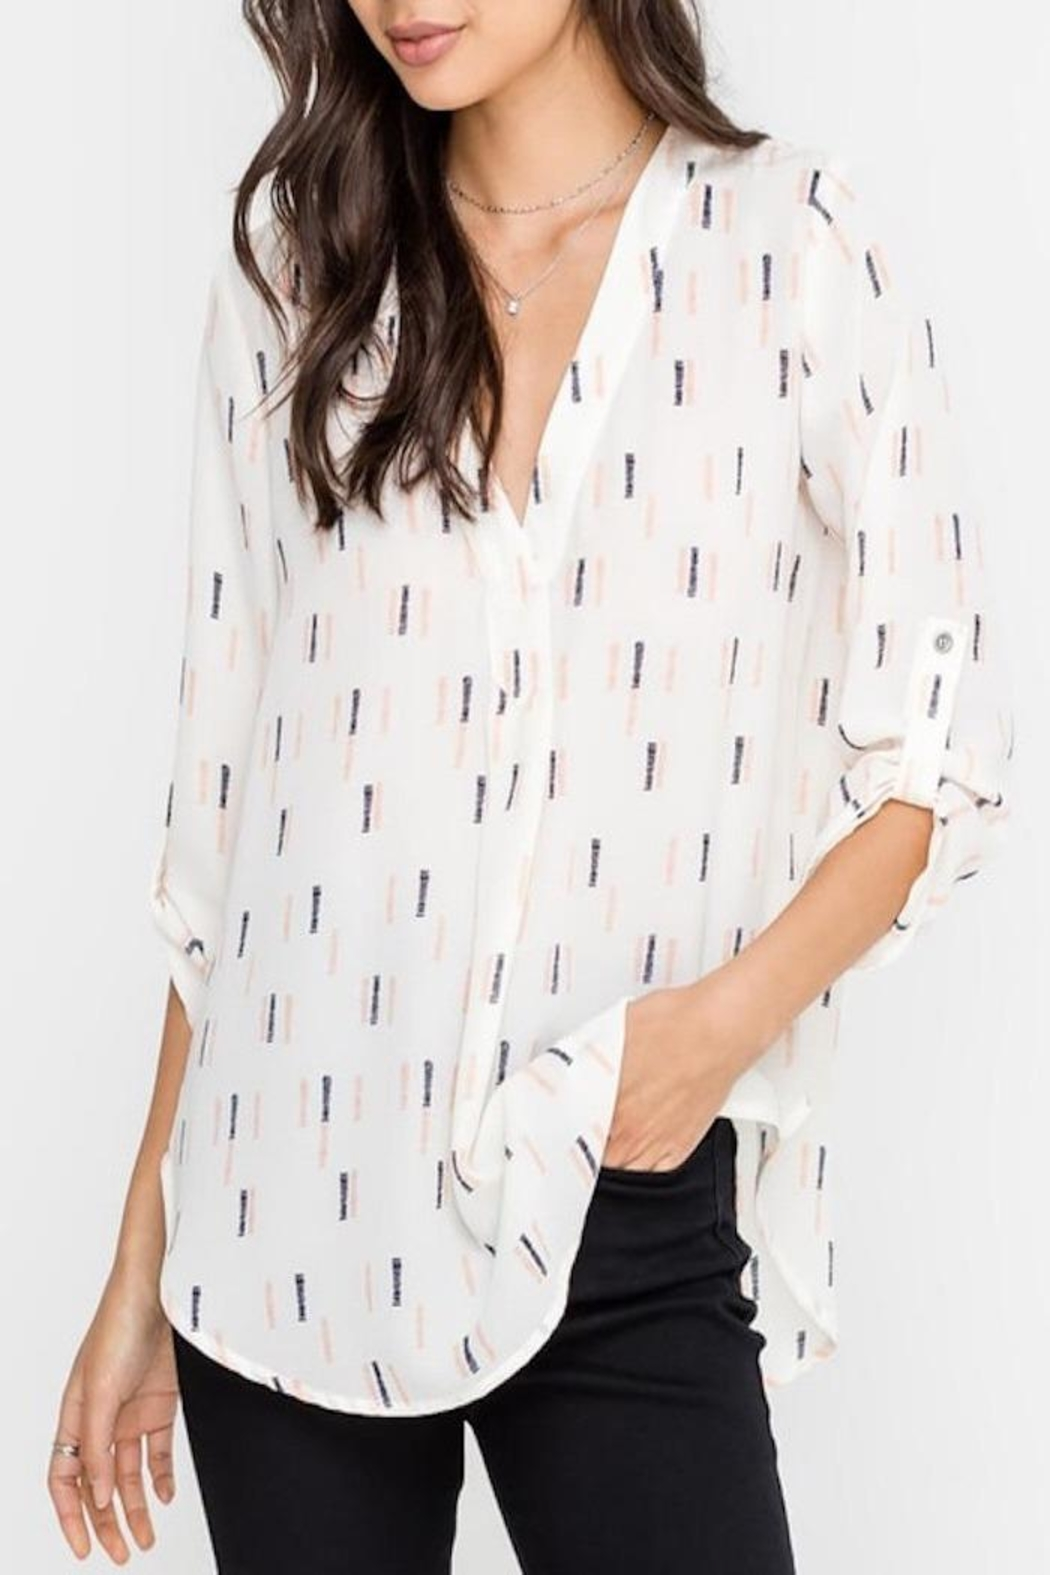 Apricot Lane Business Casual Top - Main Image